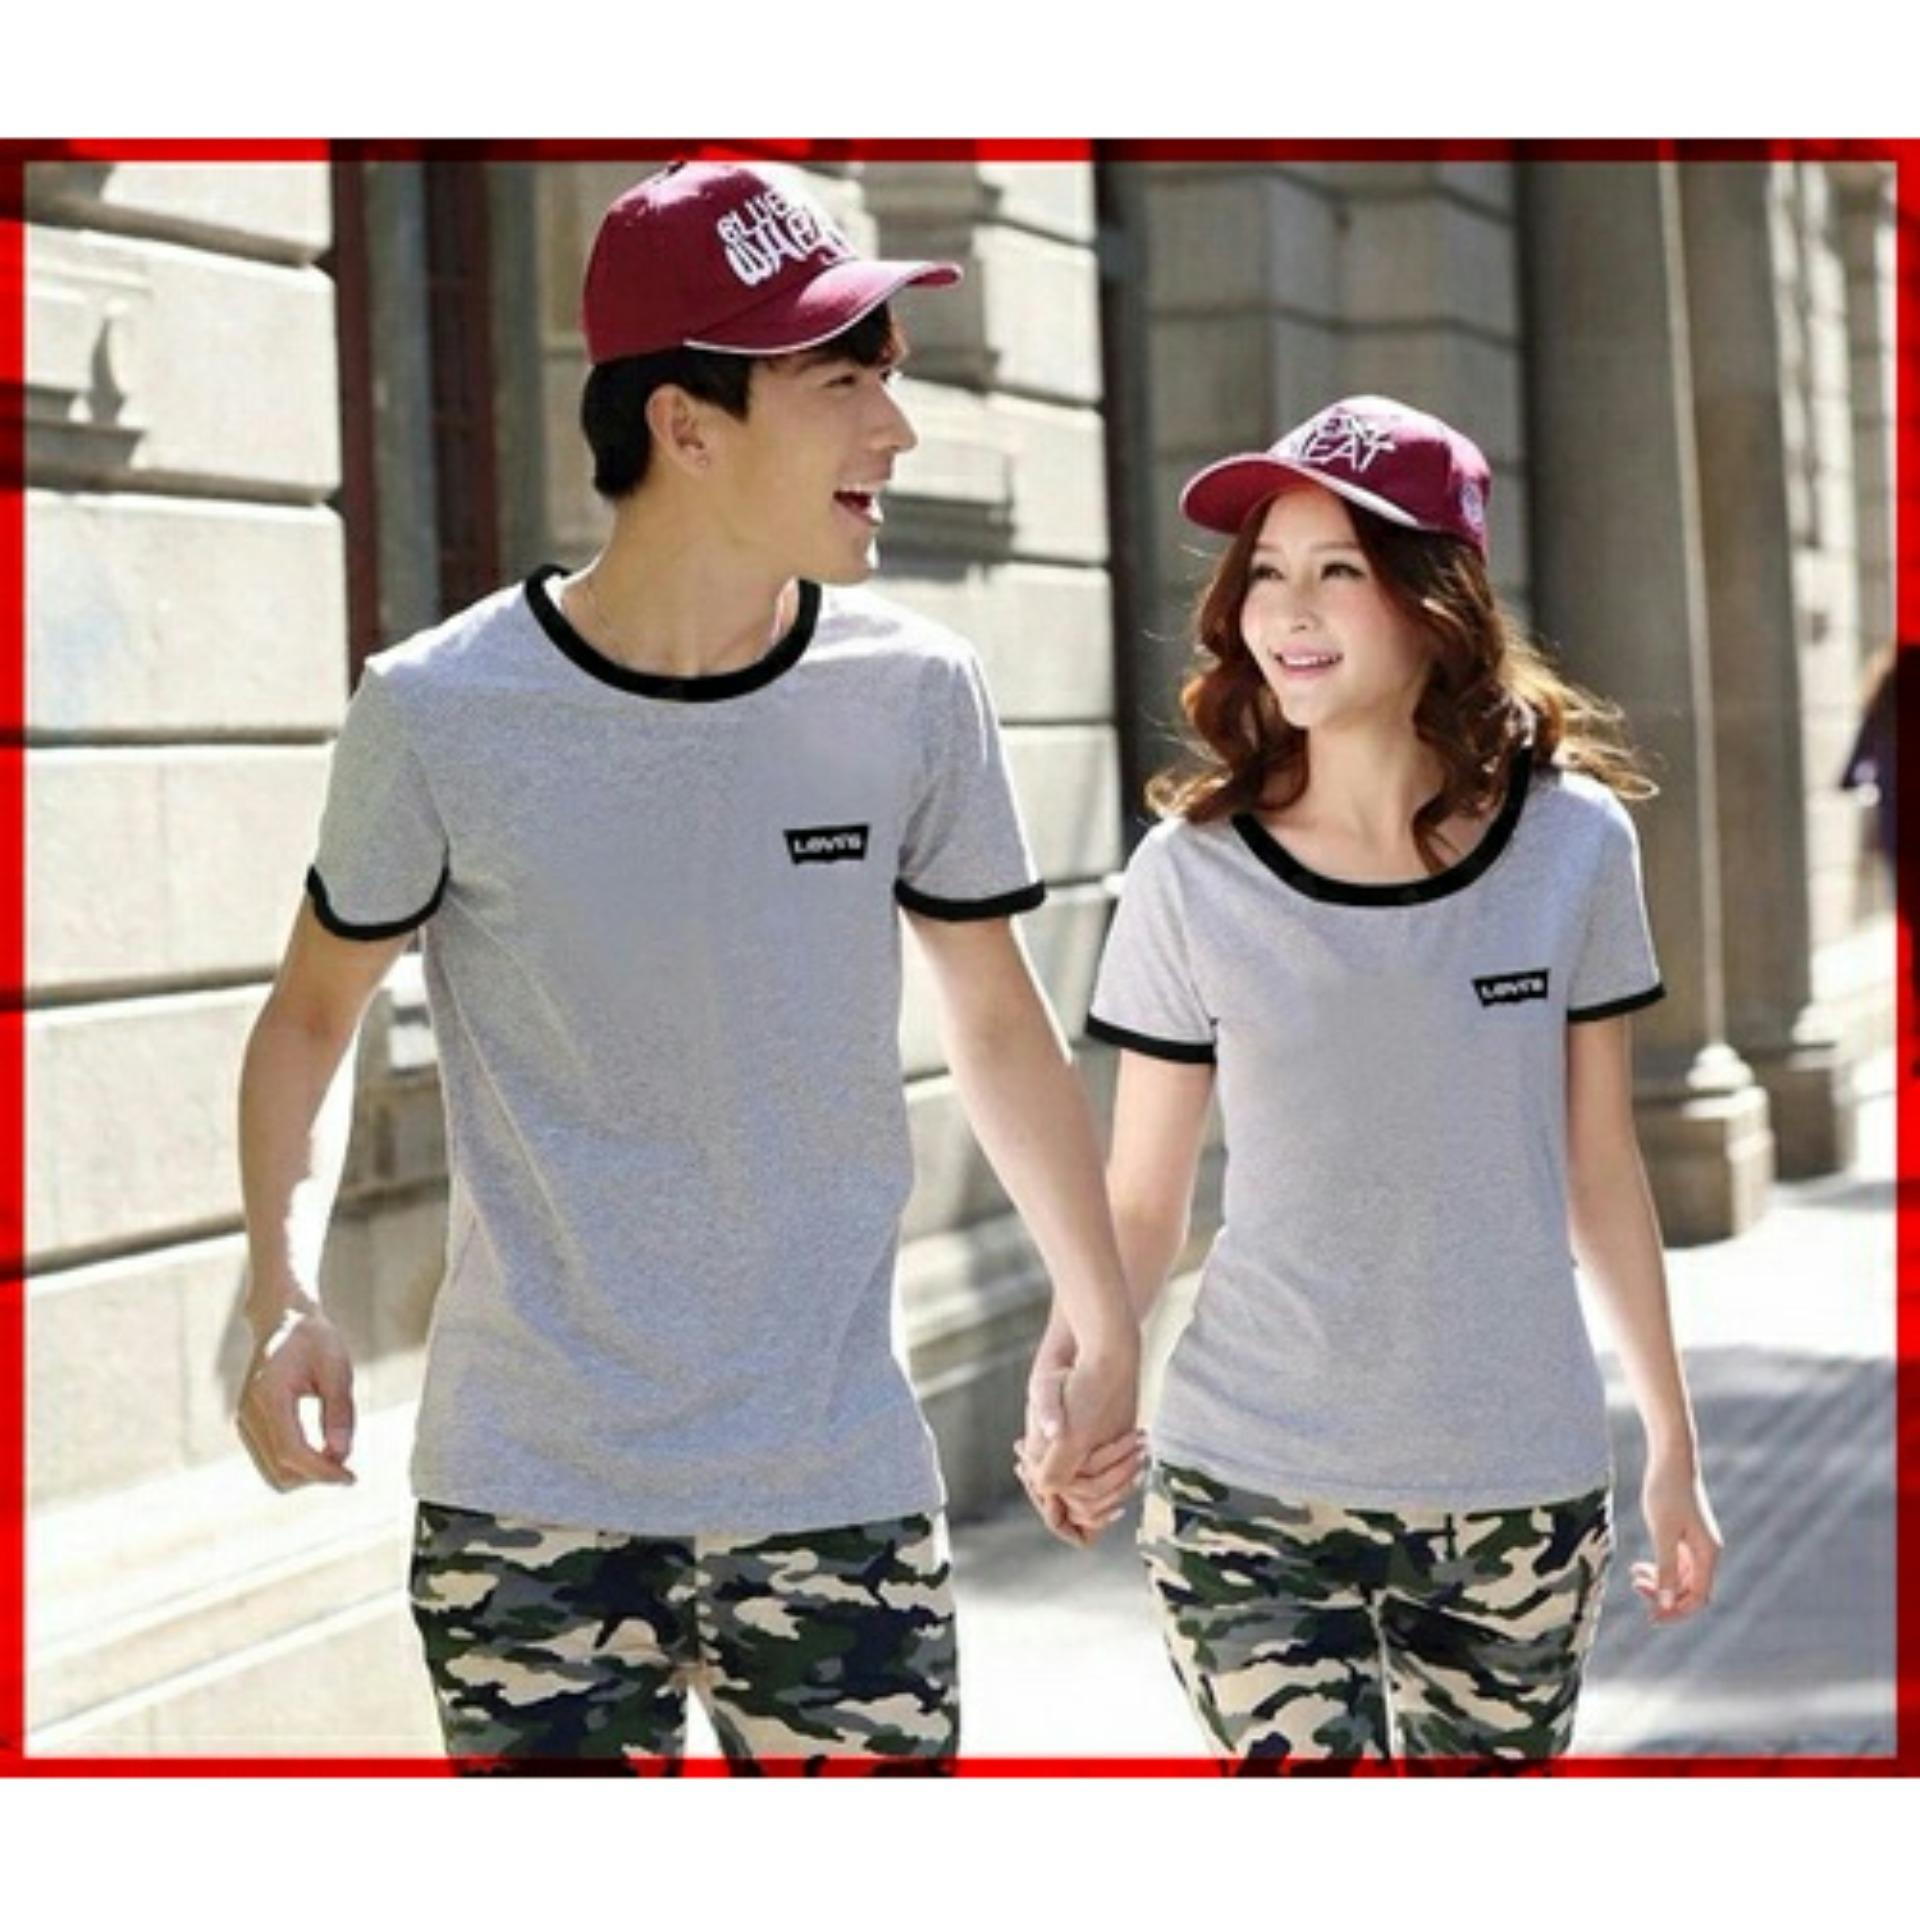 JC - Kaos Couple LVS  Model Terbaru / Tshit Couple / Baju Pasangan